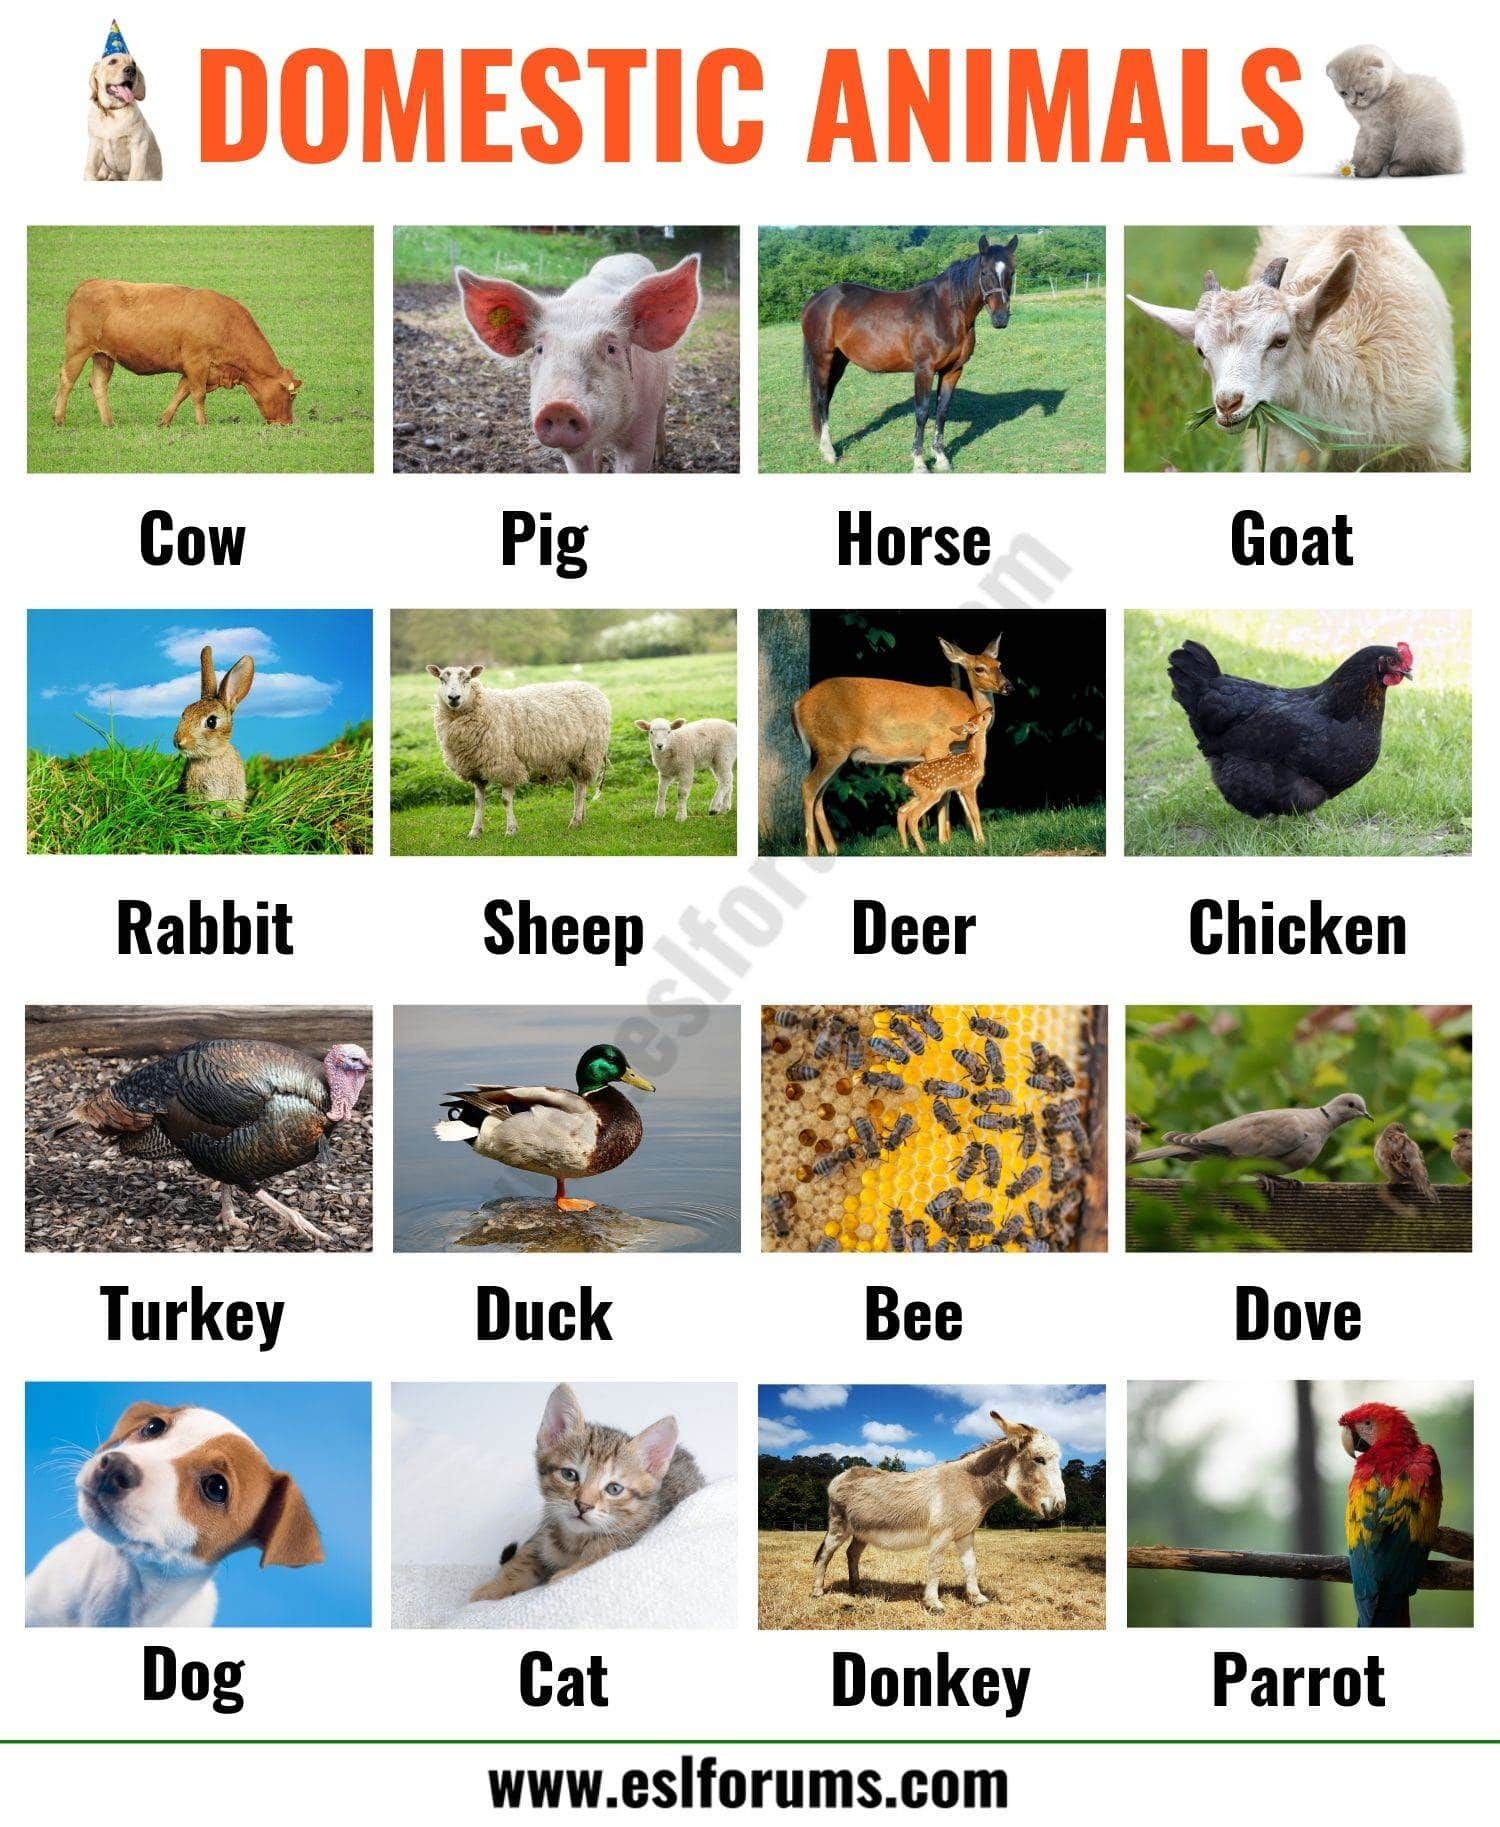 Farm Animals List of 15+ Popular Farm/ Domestic Animals